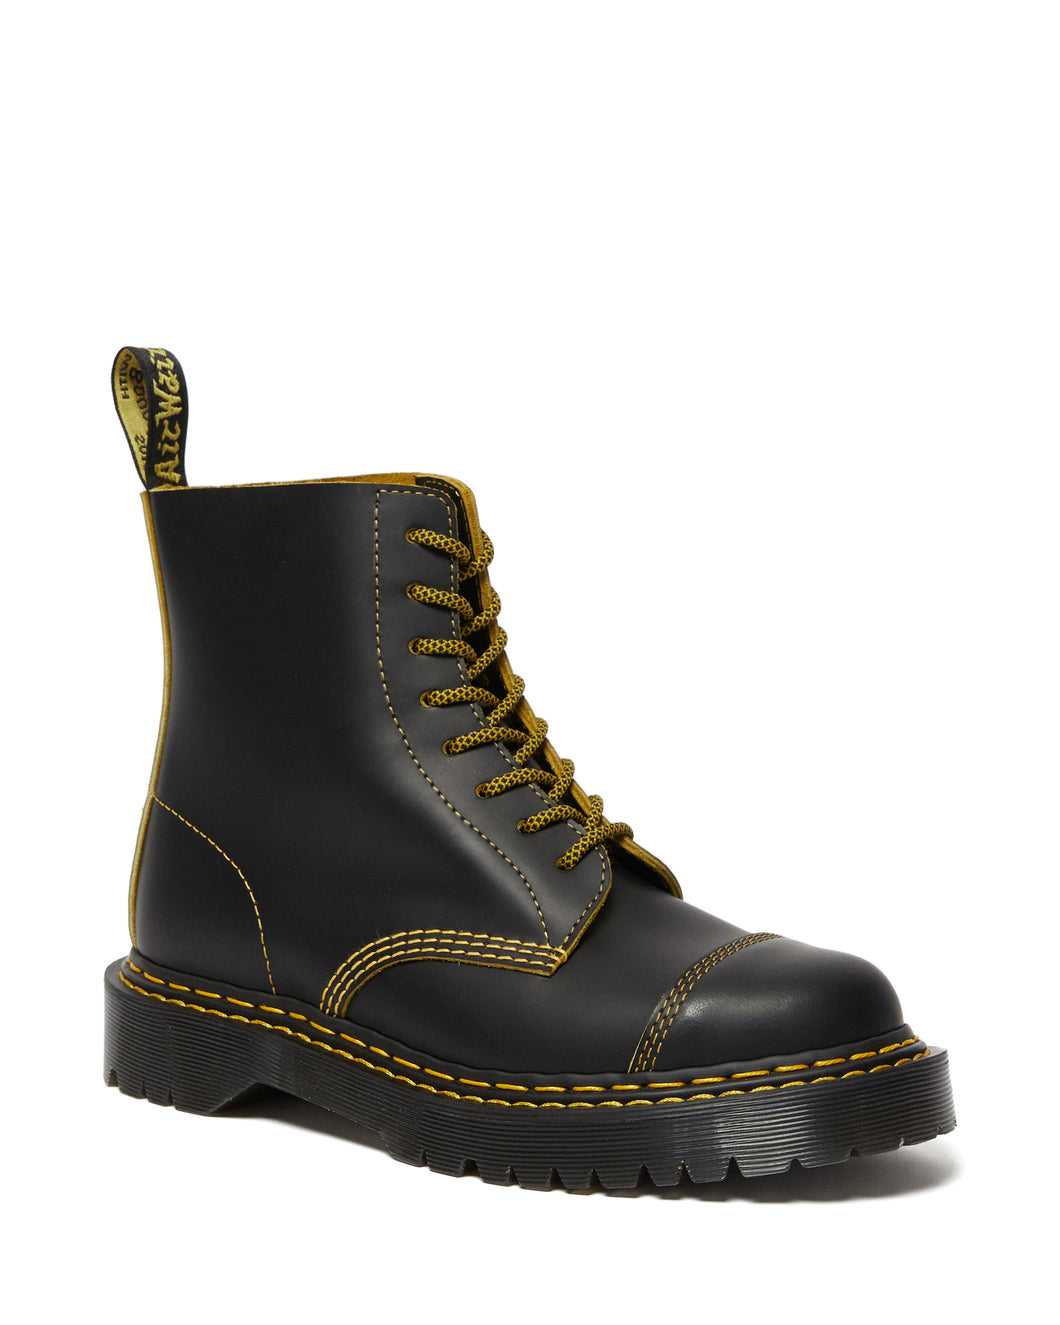 1460 PASCAL DOUBLE STITCH LEATHER BOOTS